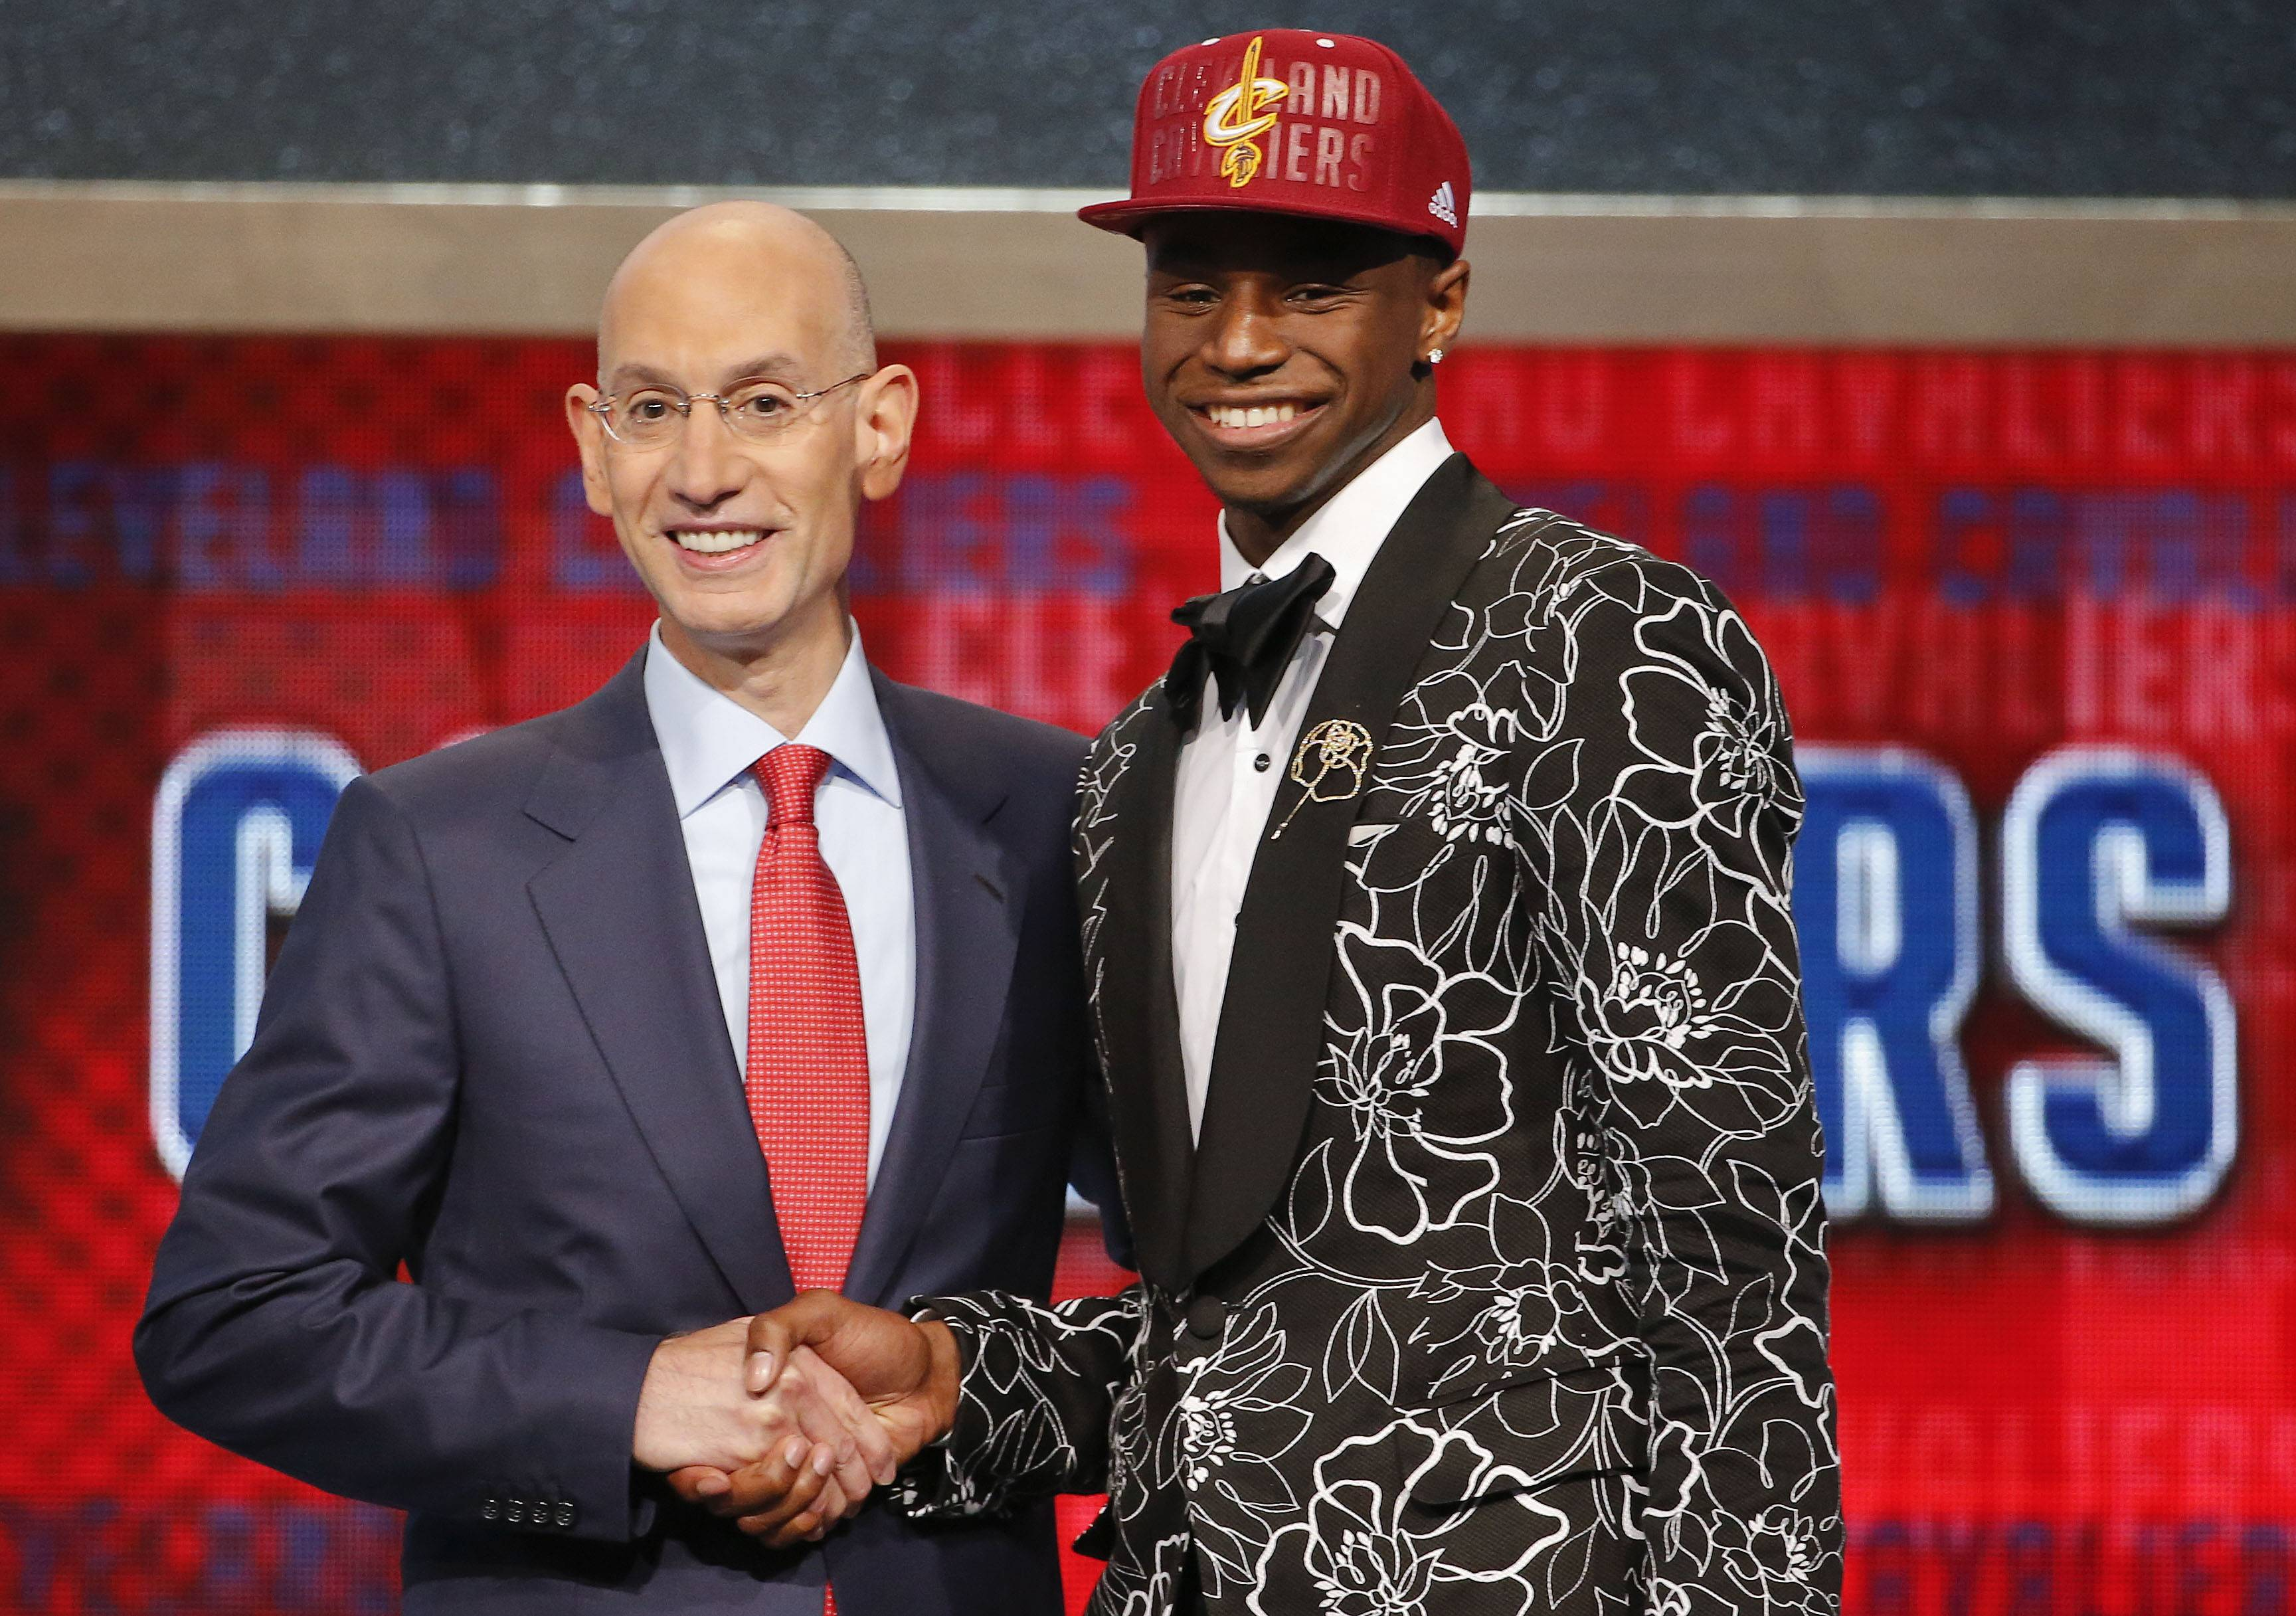 NBA Commissioner Adam Silver, left, congratulates Andrew Wiggins of Kansas who was selected by the Cleveland Cavaliers as the number one pick in the 2014 NBA draft, Thursday, June 26, 2014, in New York.